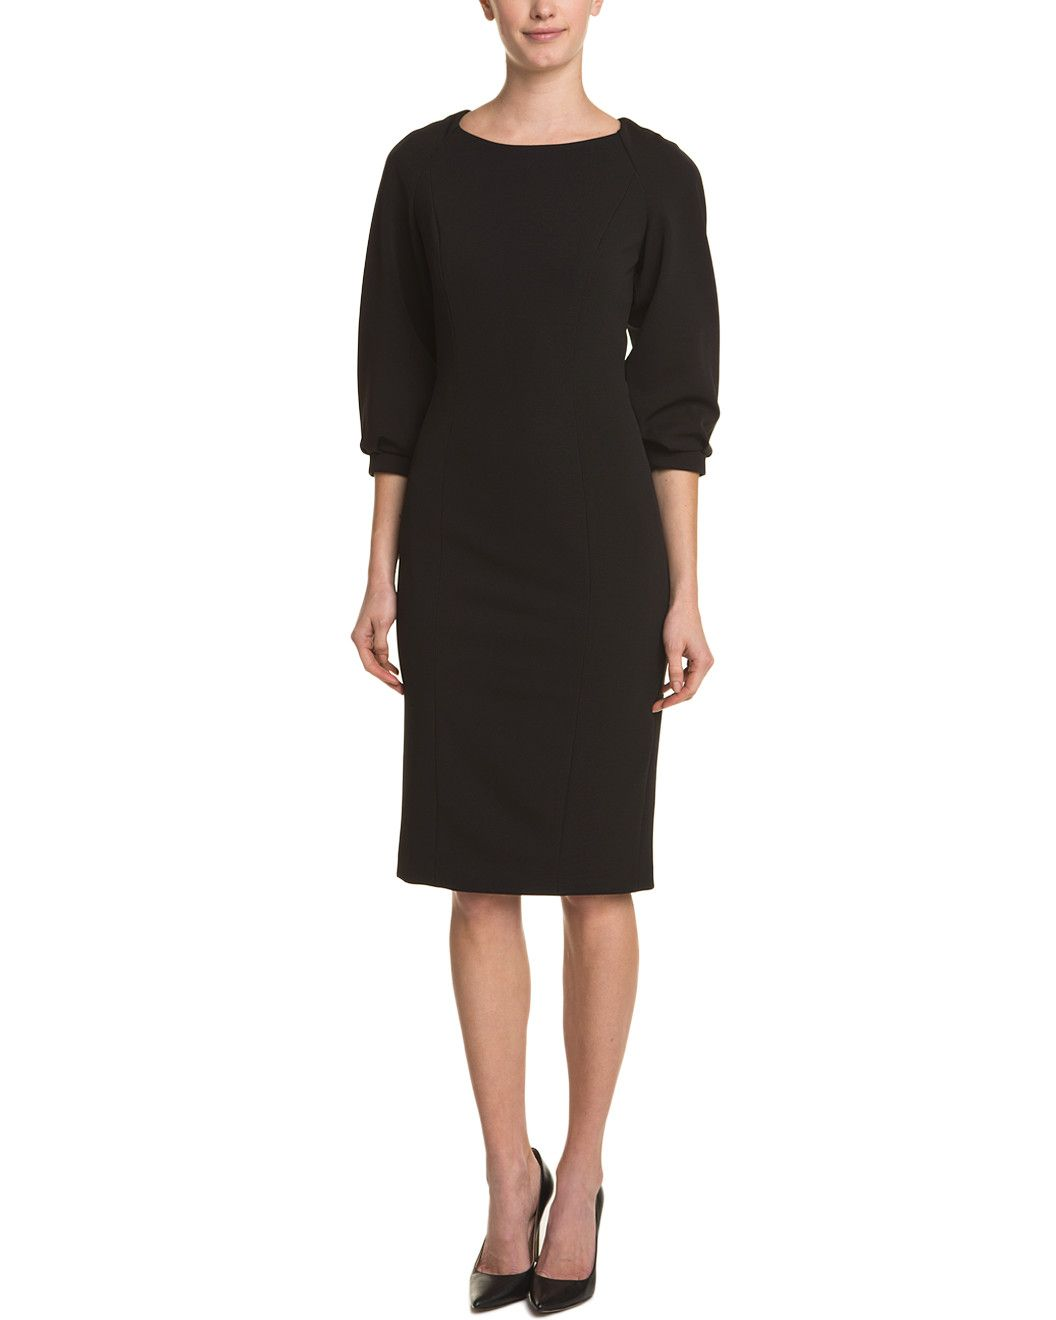 Spotted this Badgley Mischka Black 3/4 Sleeve Shift Dress on Rue La La. Shop (quickly!).